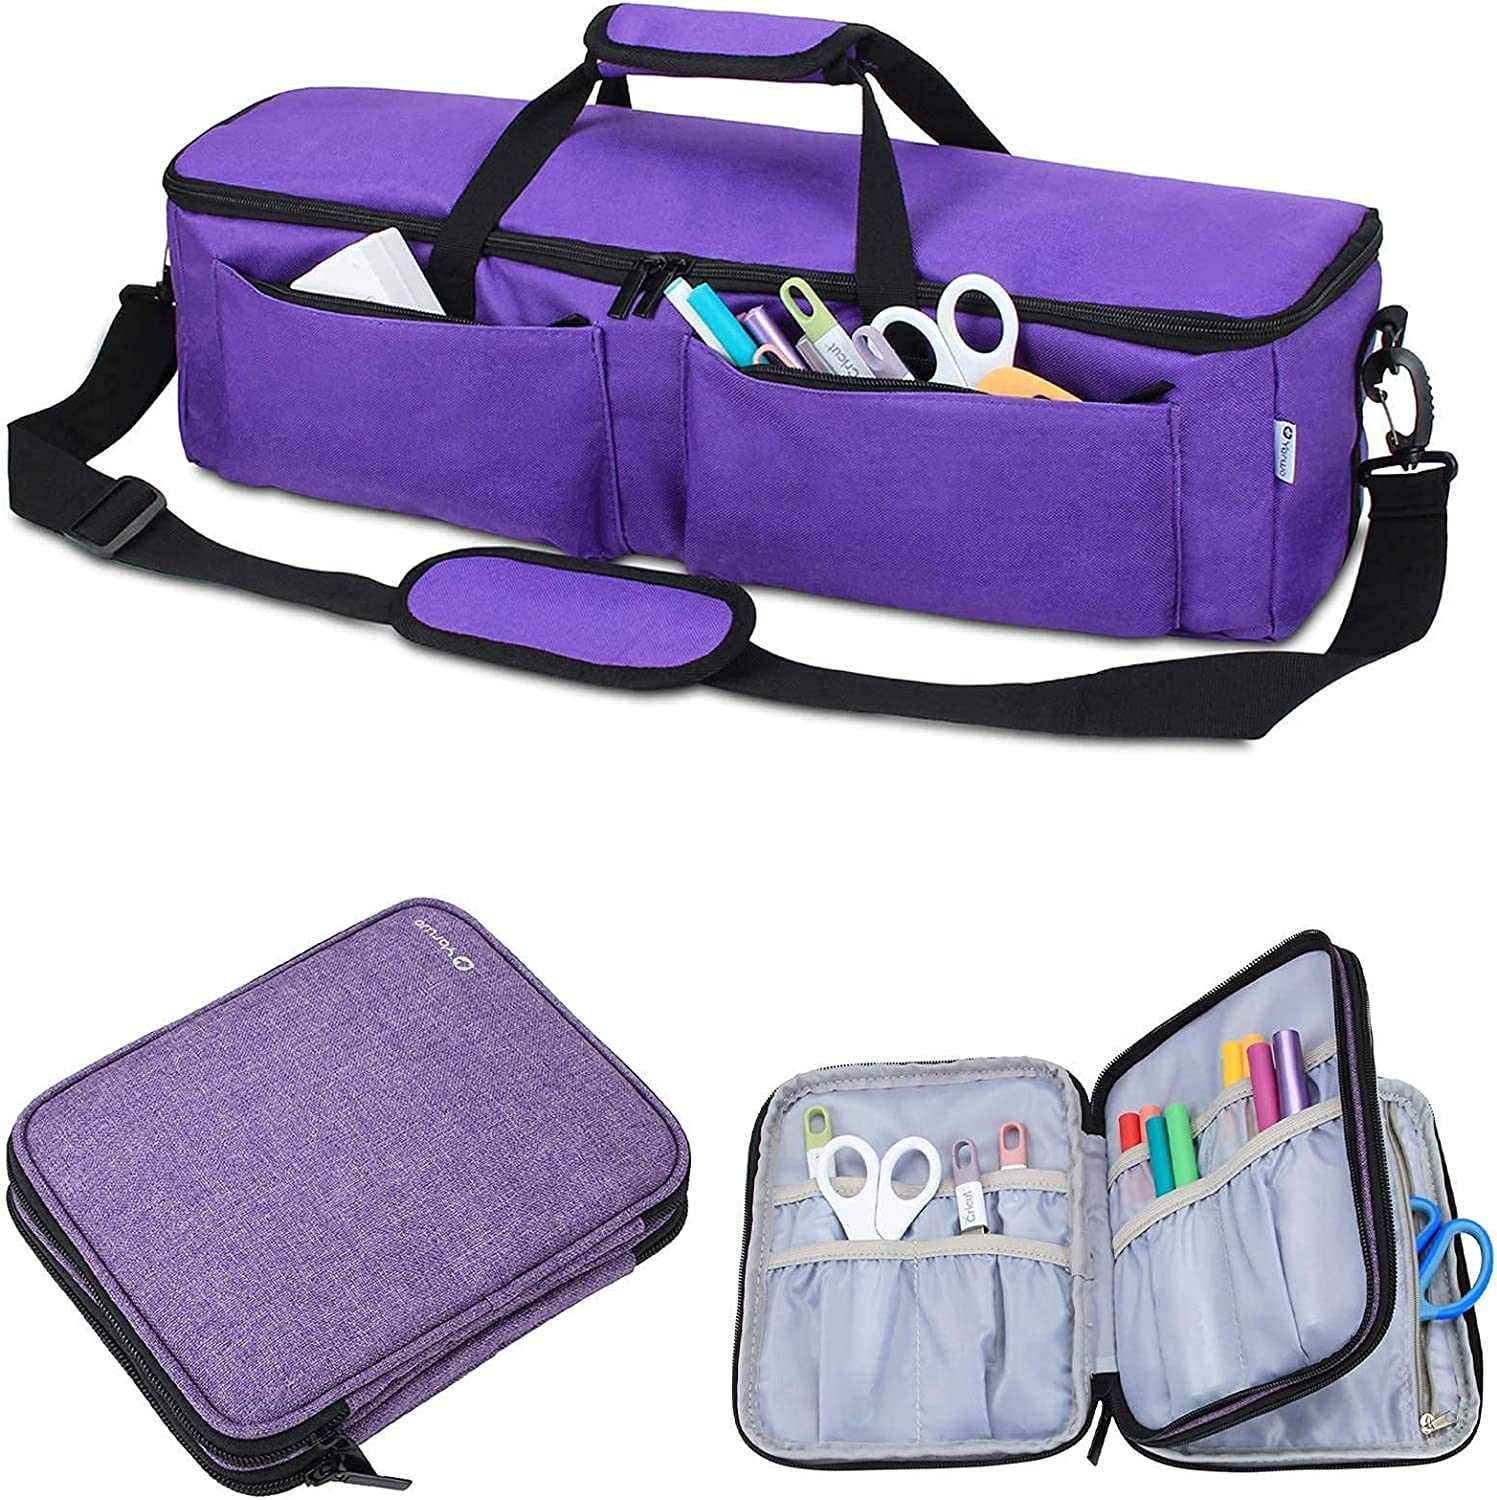 Yarwo Carrying Price reduction Bag Bundle with Quality inspection Organizer Case Compatible Cr